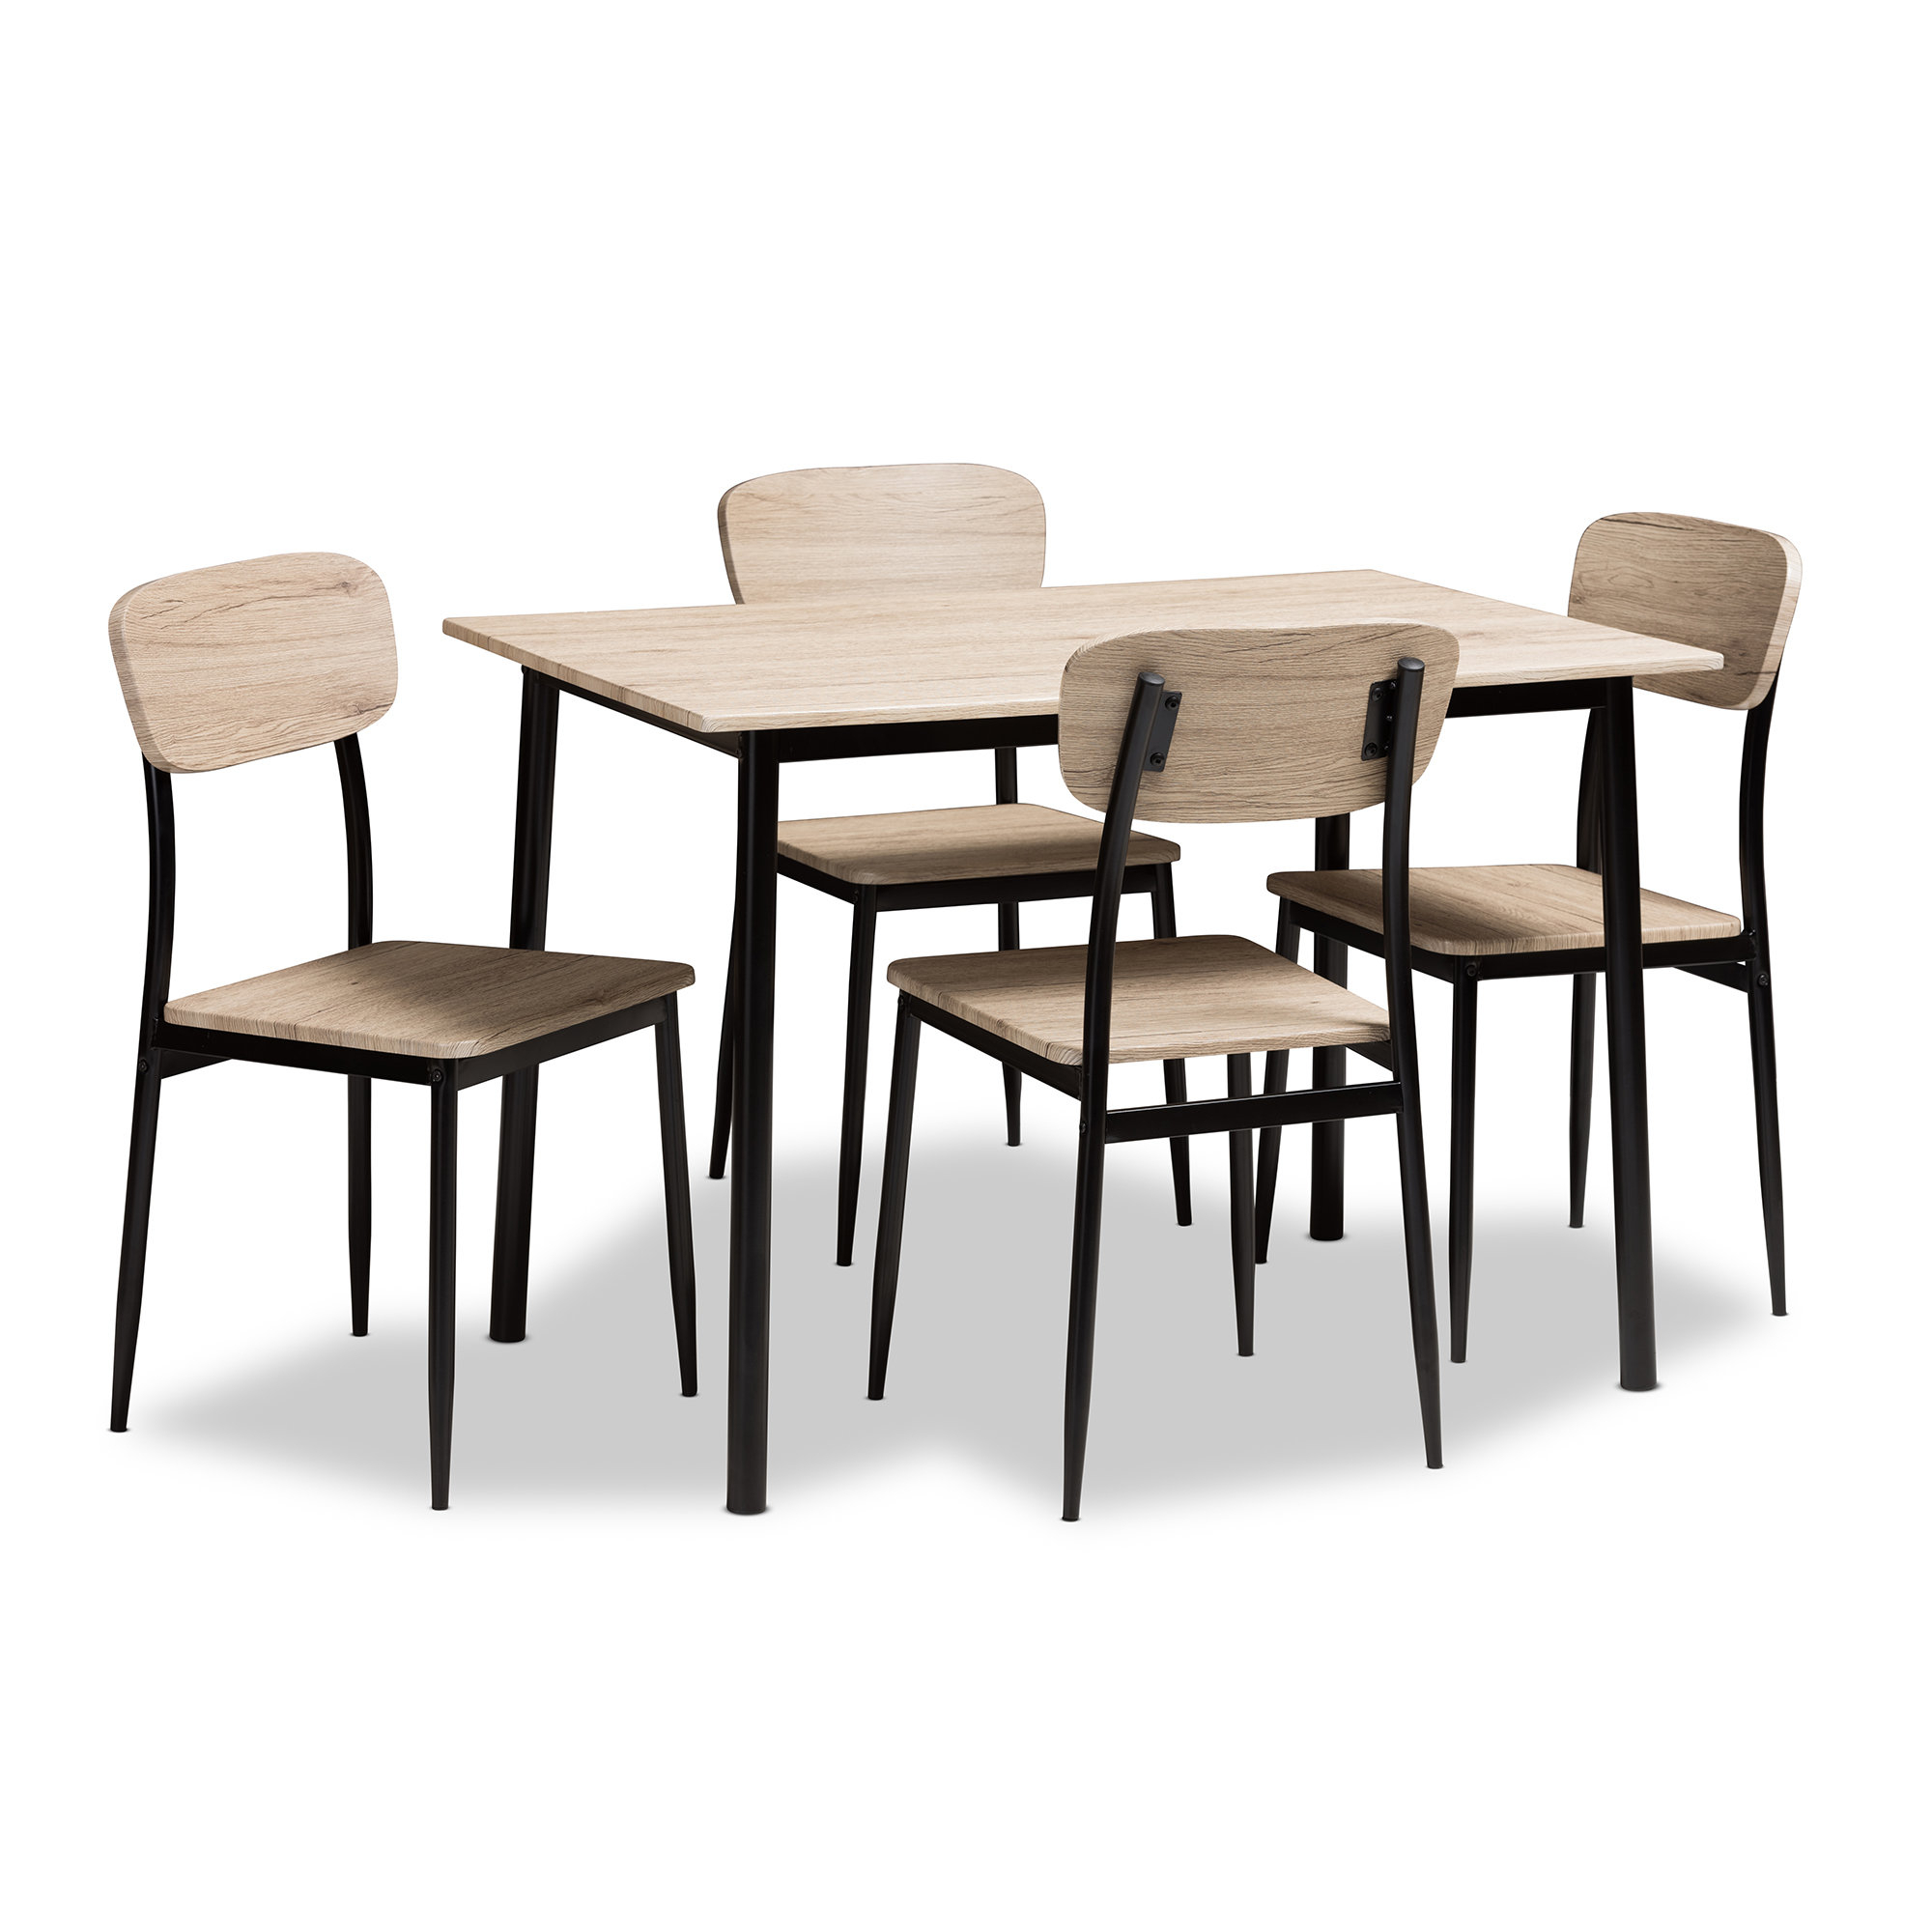 Fashionable Wiggs 5 Piece Dining Set Pertaining To Middleport 5 Piece Dining Sets (Gallery 7 of 20)